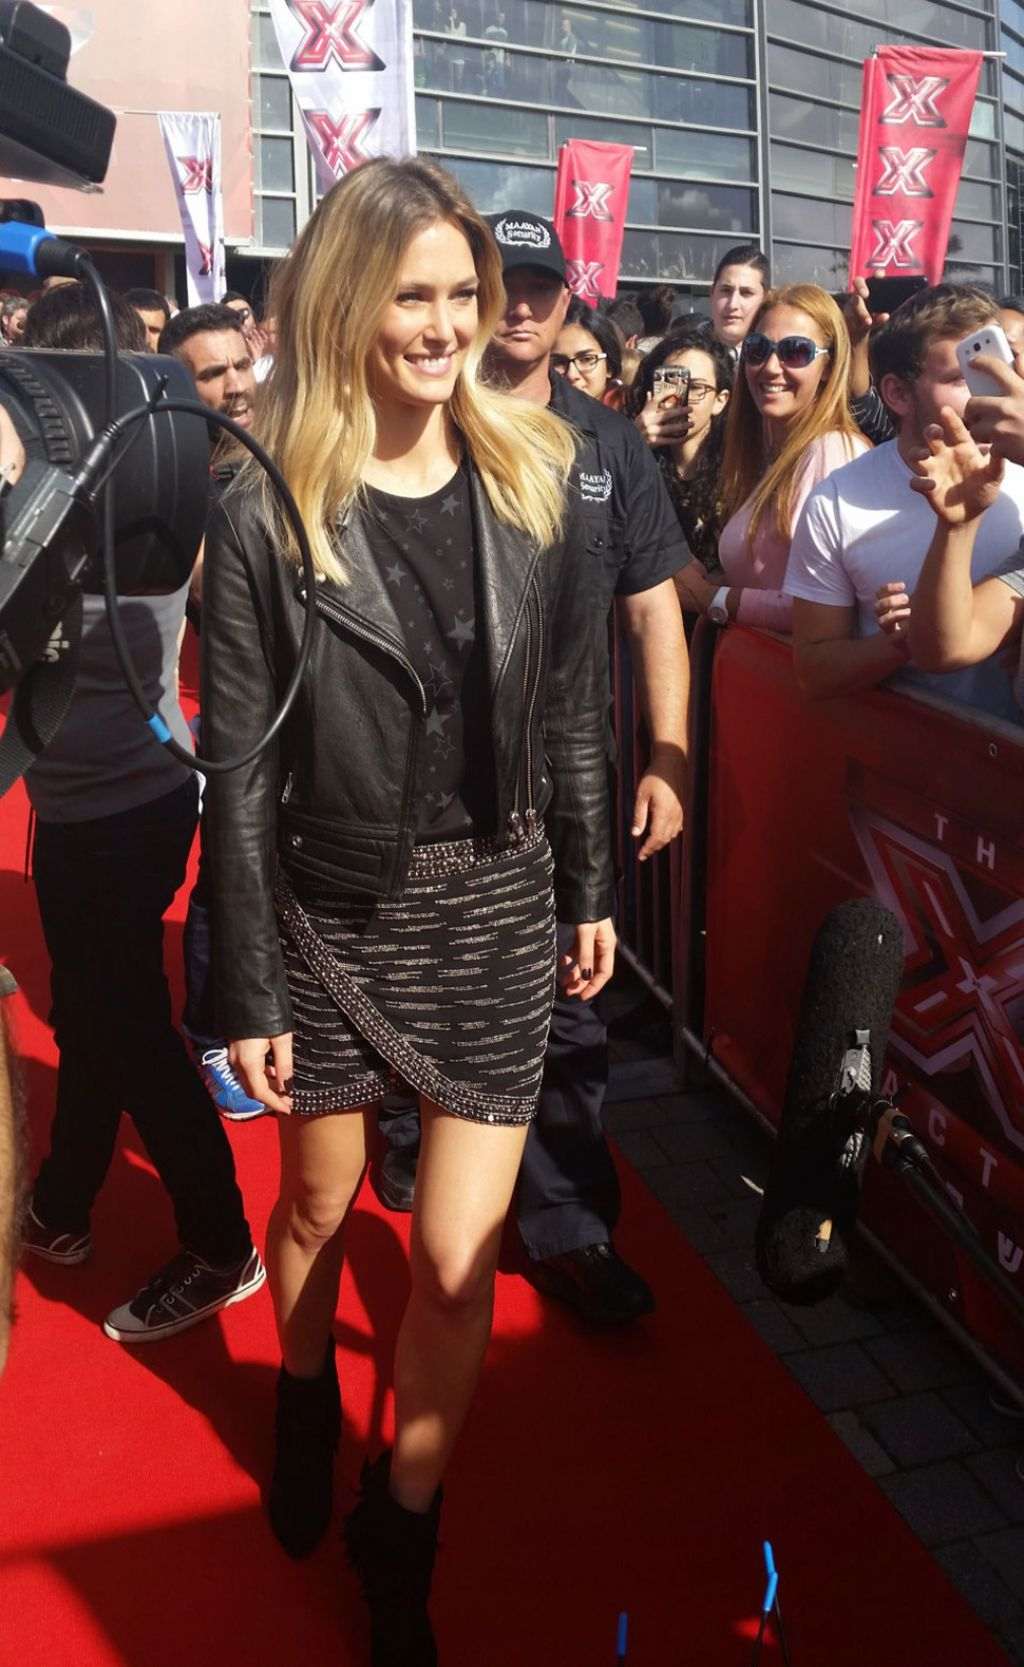 Bar Refaeli - The X Factor Israel Audition at Menora Mivtachim Arena in Tel Aviv, February 2015